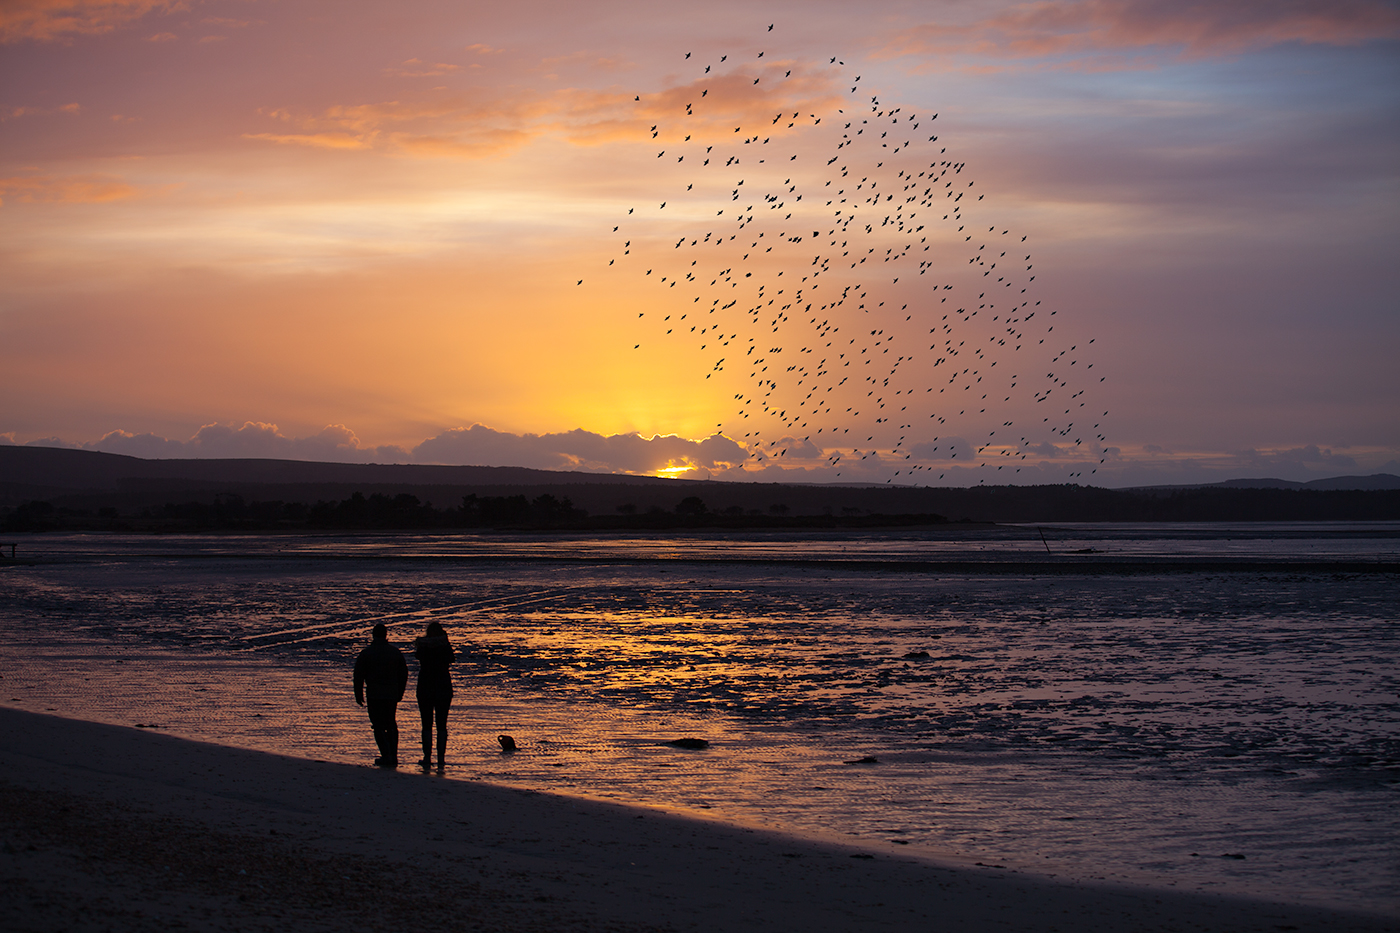 Murmurating starlings over Poole Harbour